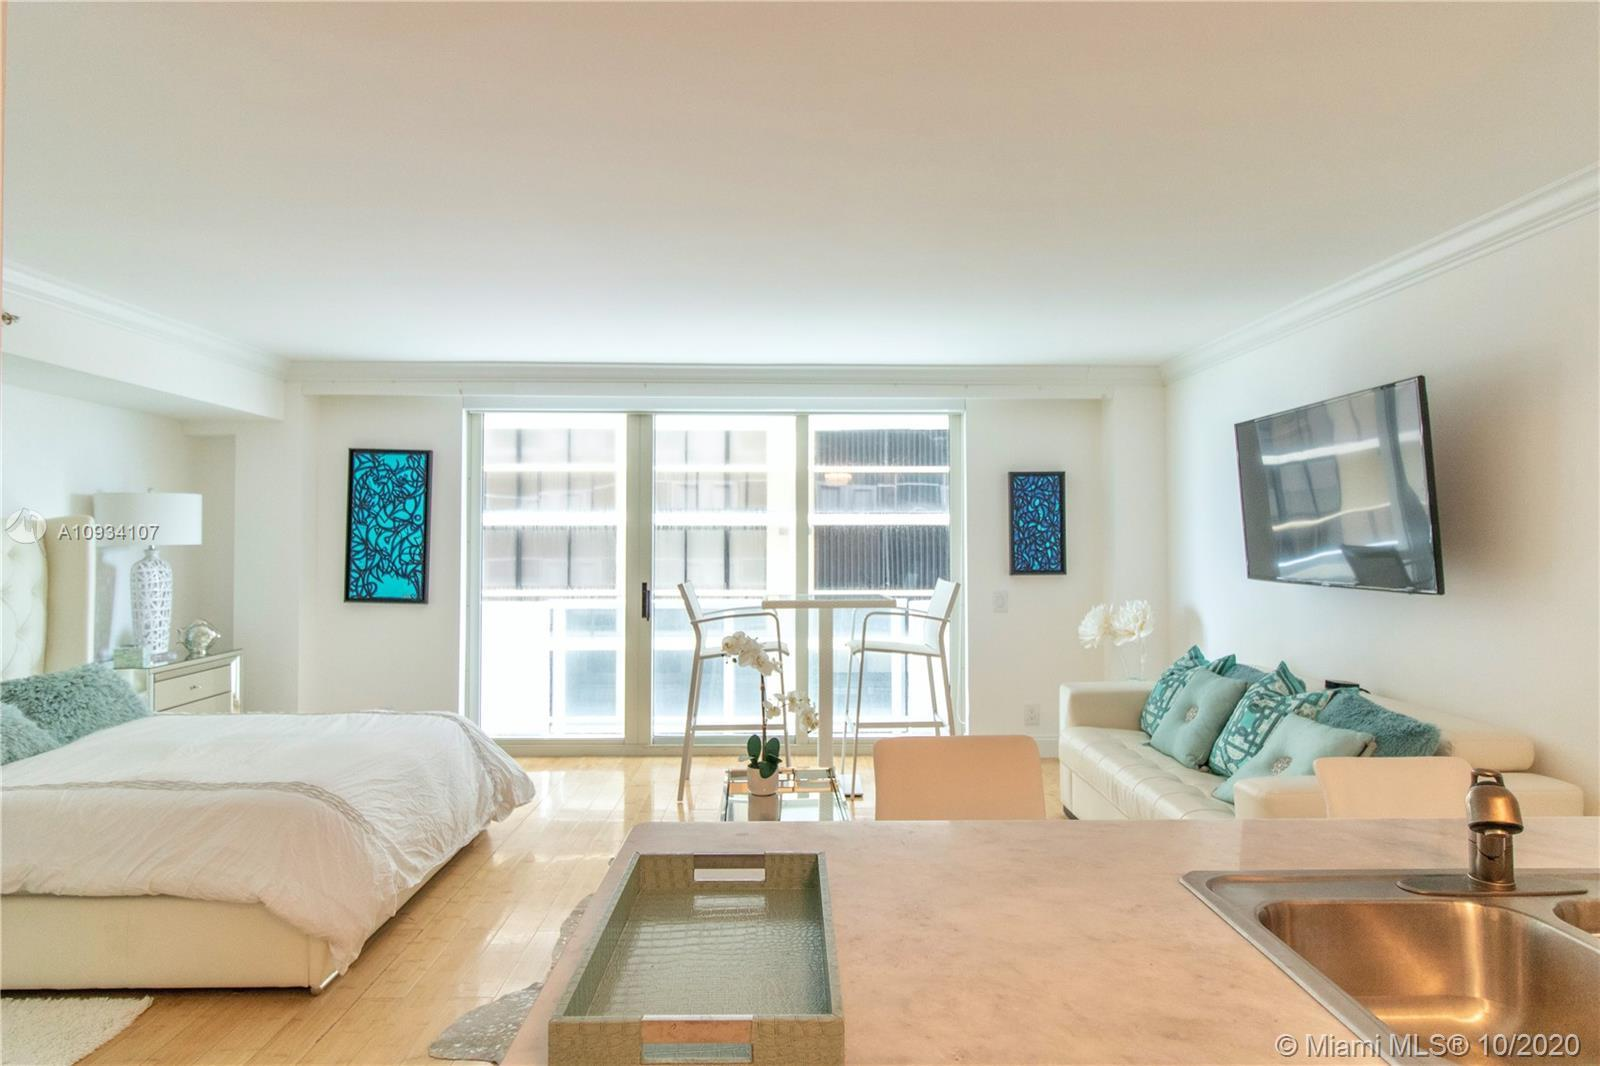 This is the one!!! Come have an ocean life style. Very cozy furnished studio with a modern décor and